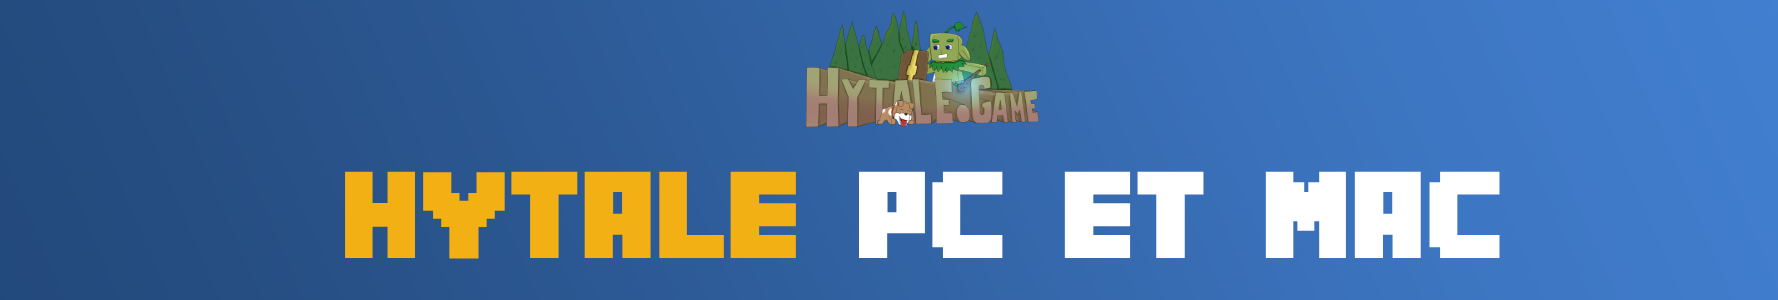 hytale-platforme-pc-mac.png